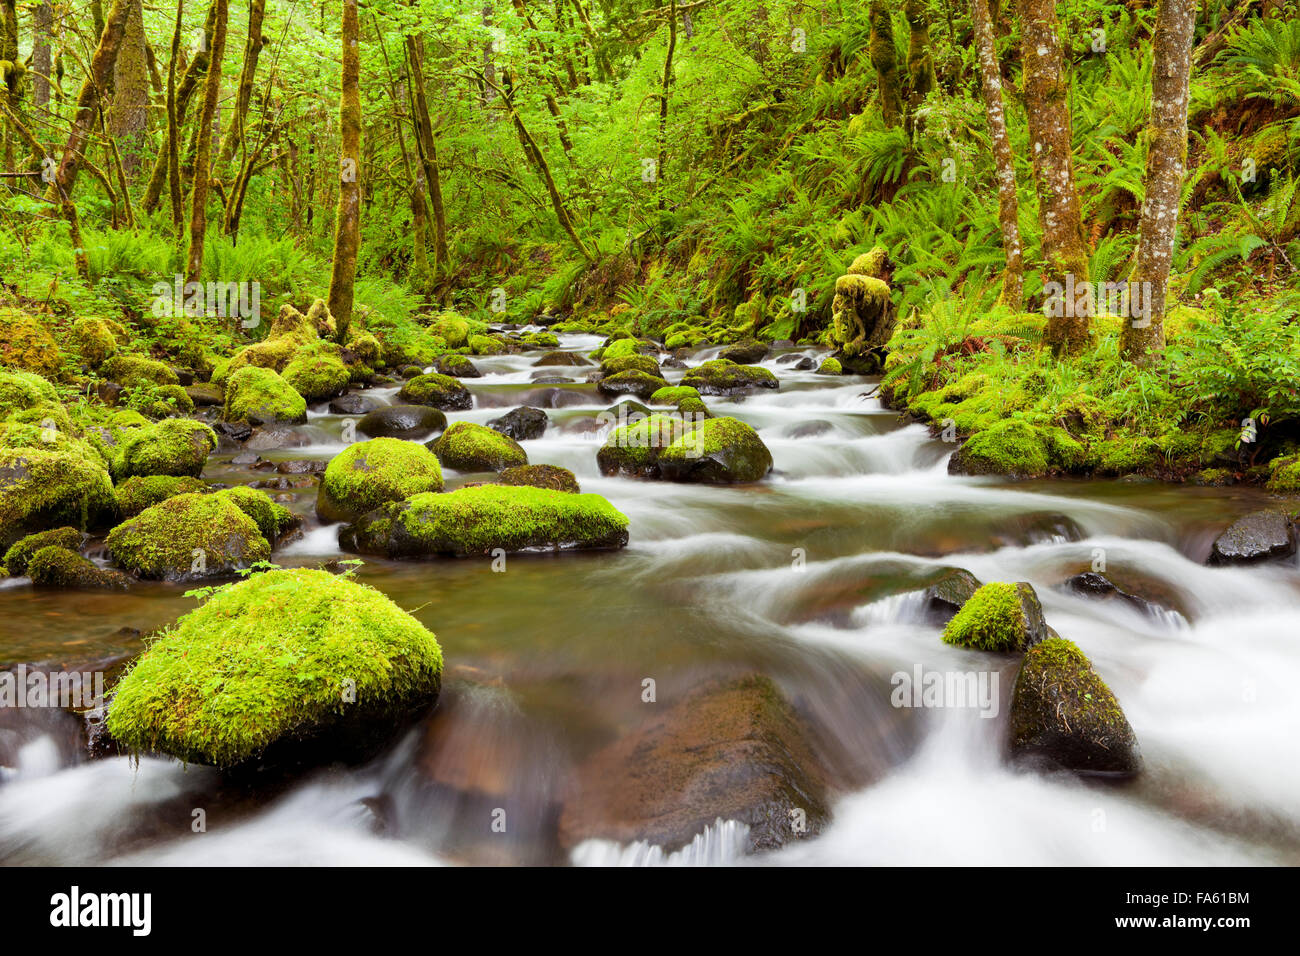 Gorton Creek through lush rainforest in the Columbia River Gorge, Oregon, USA. - Stock Image